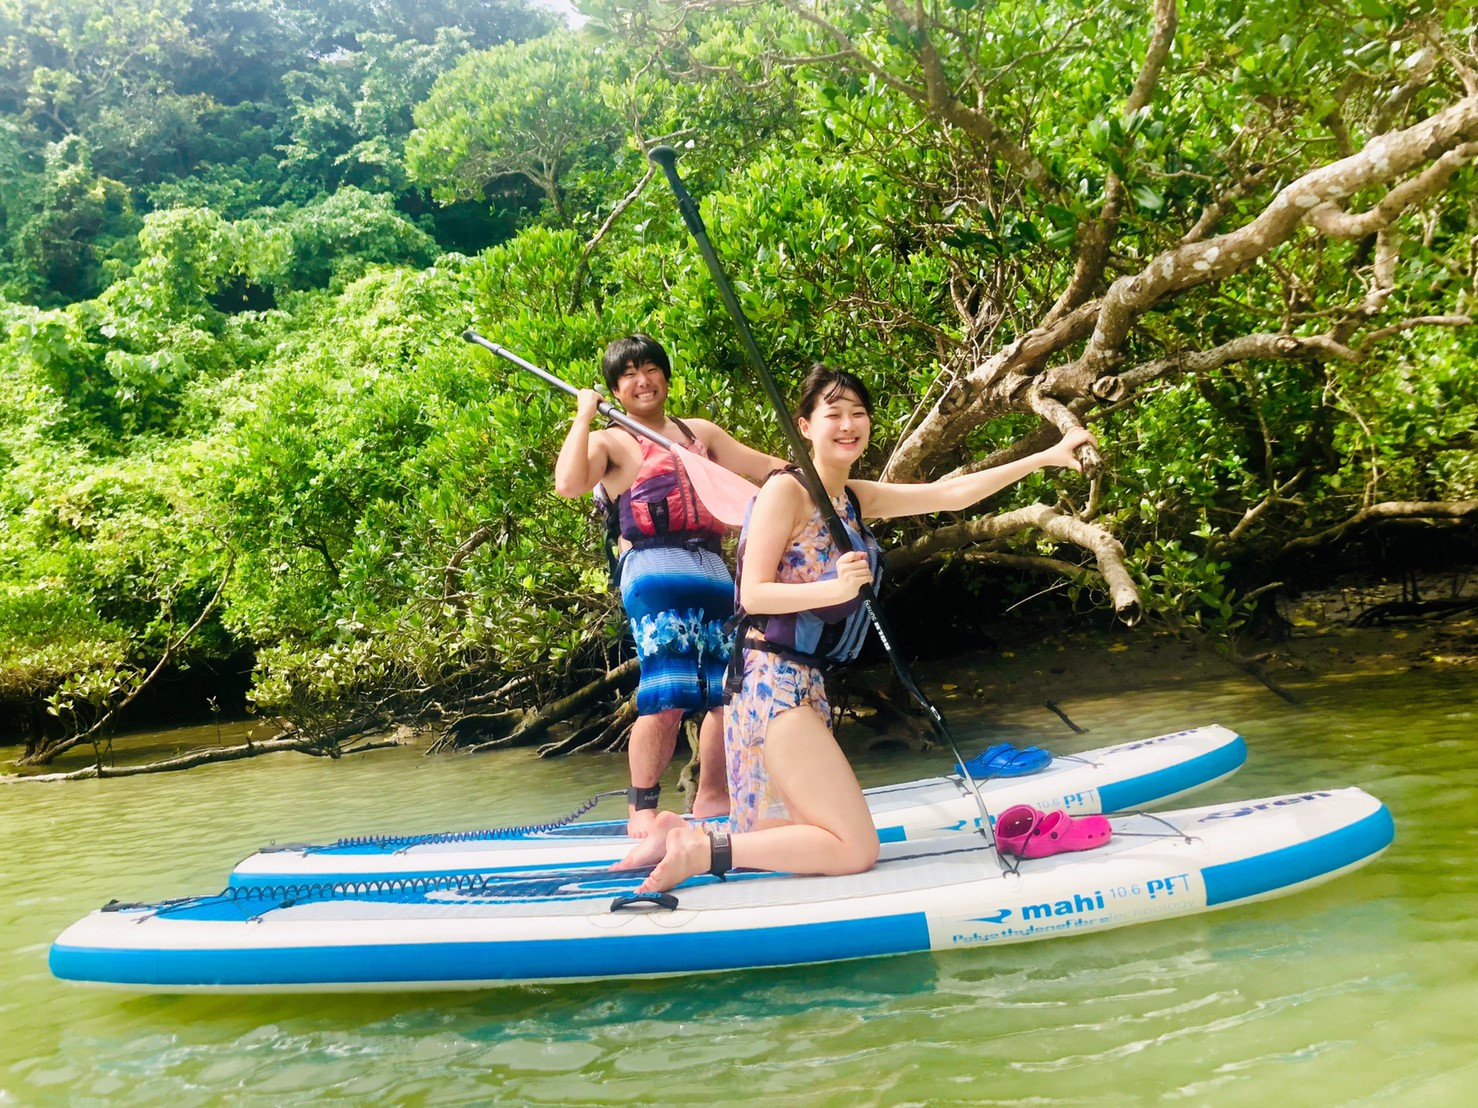 Reservation on the day of activity is OK!【Okinawa / Kadena】Play in the nature! Mangove SUP (stand up paddle boarding) tour!